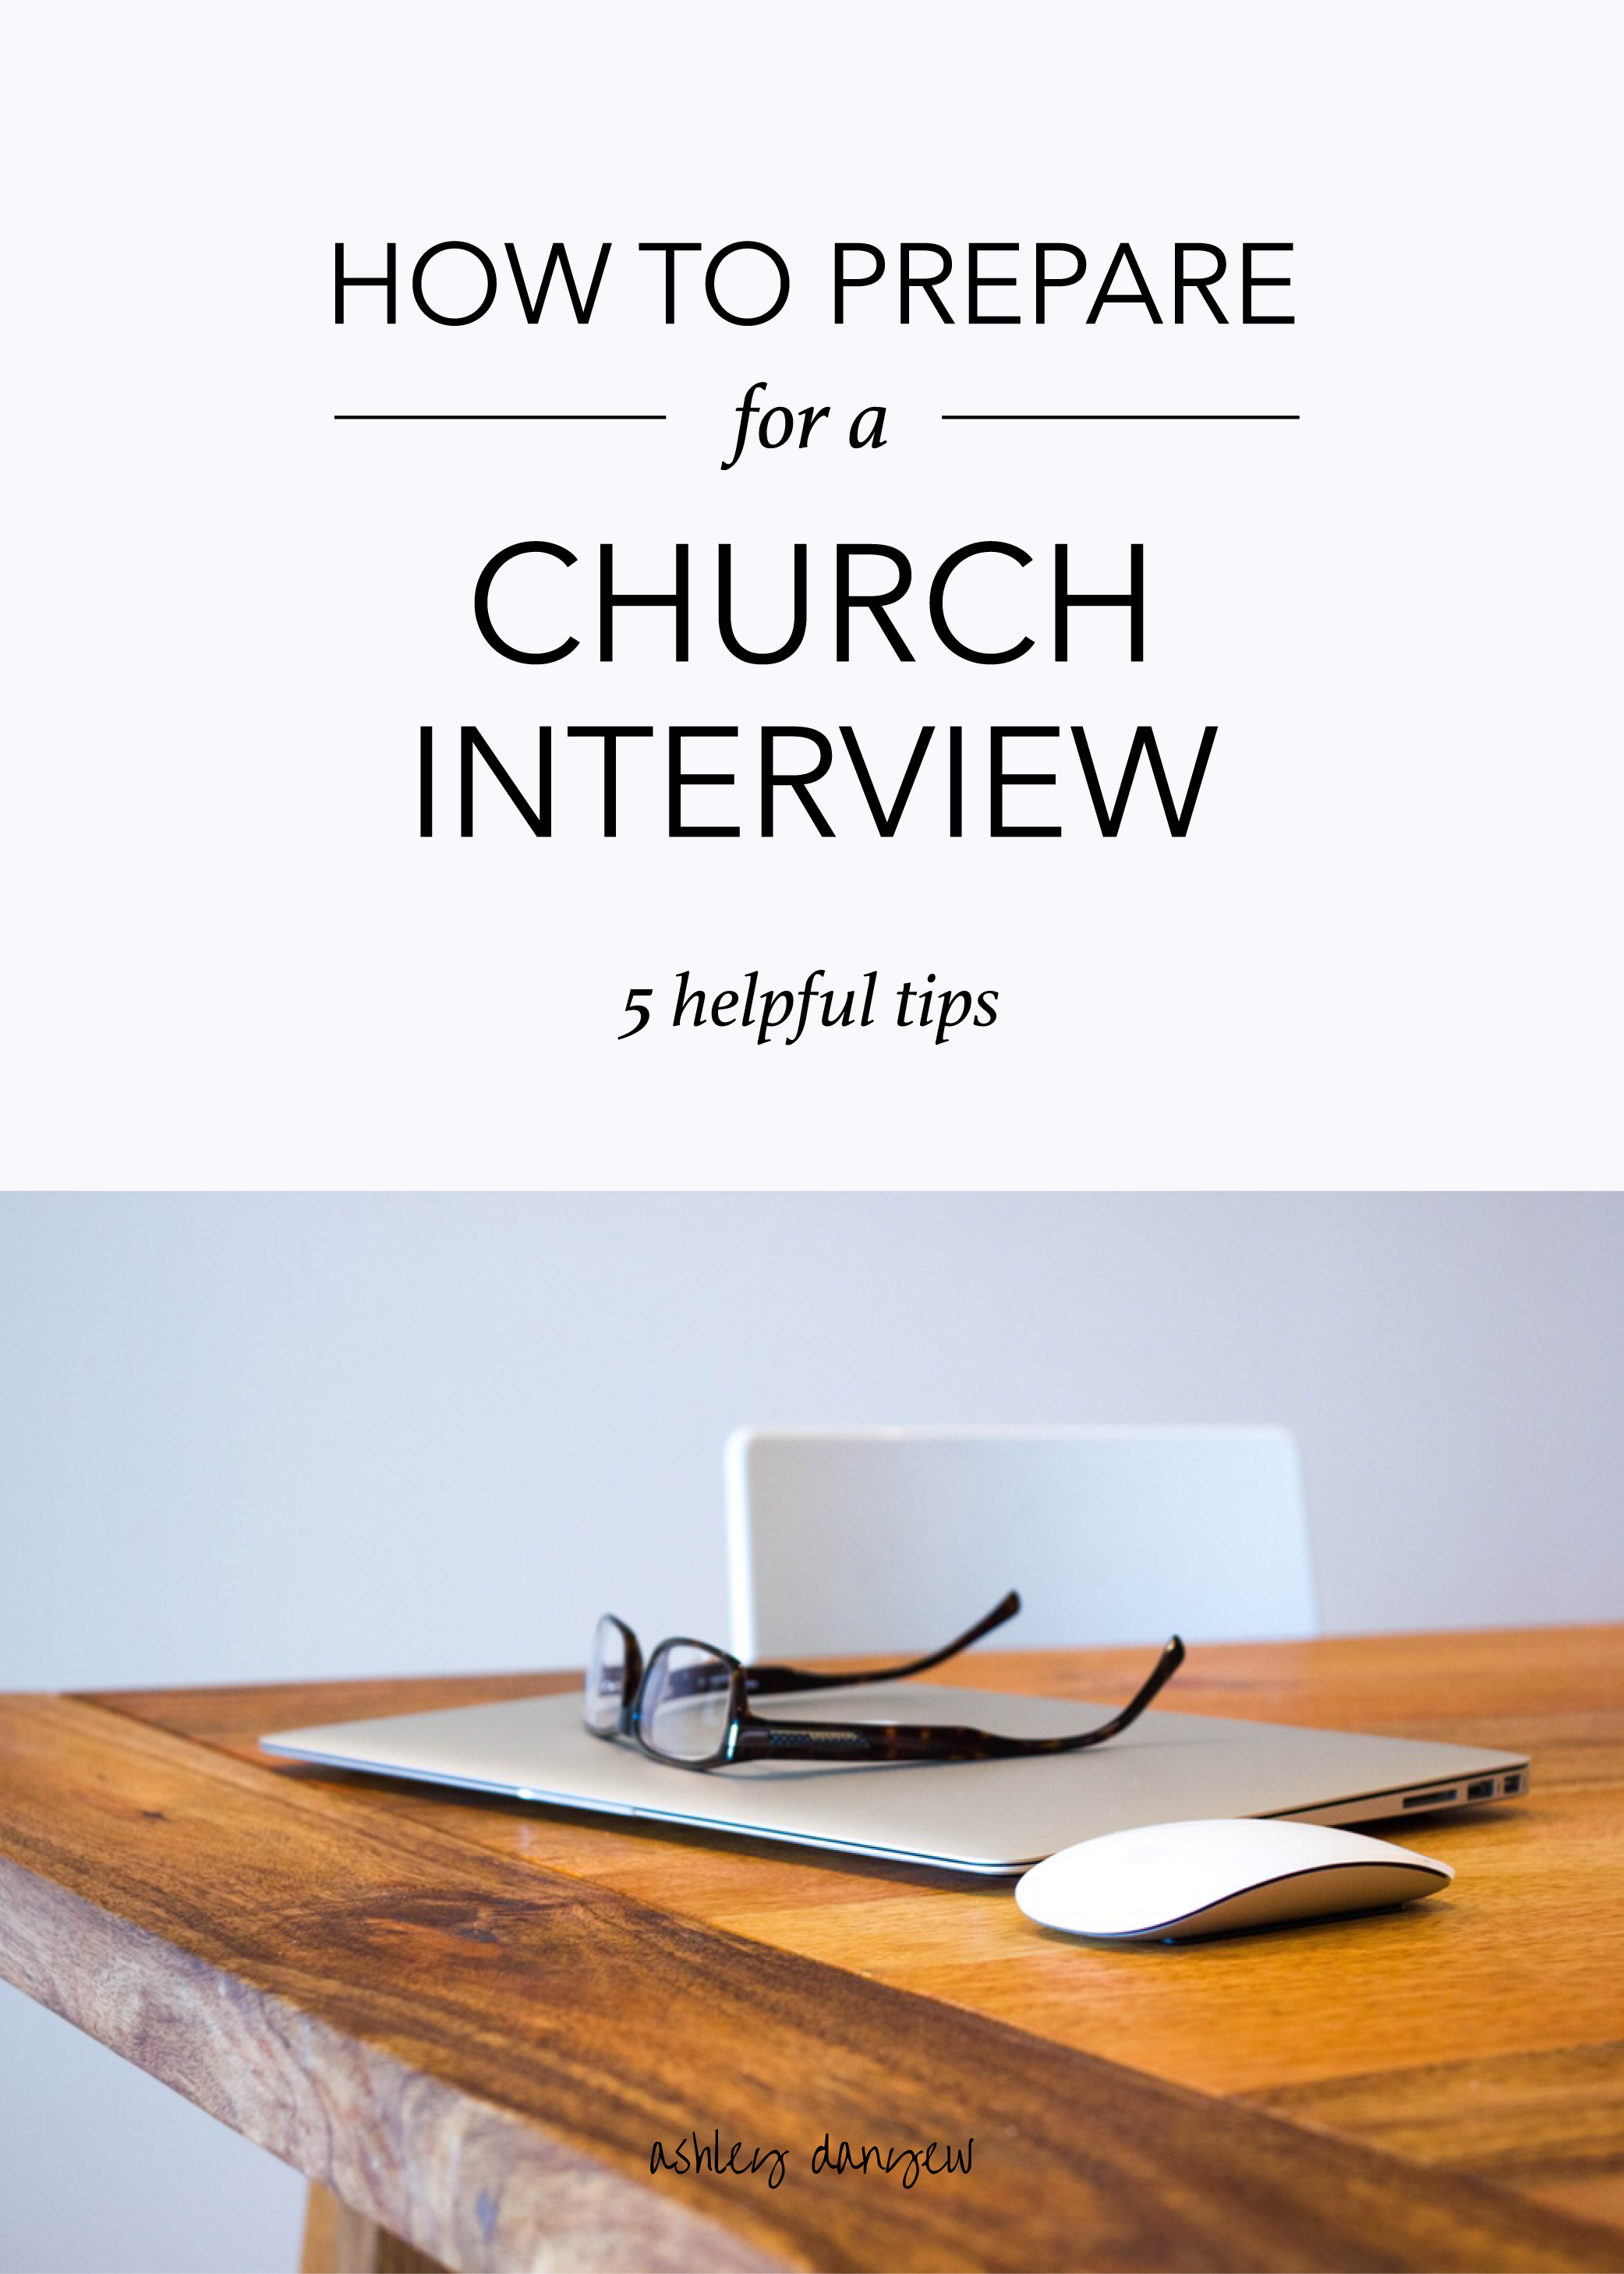 How-to-Prepare-for-a-Church-Interview-01.png